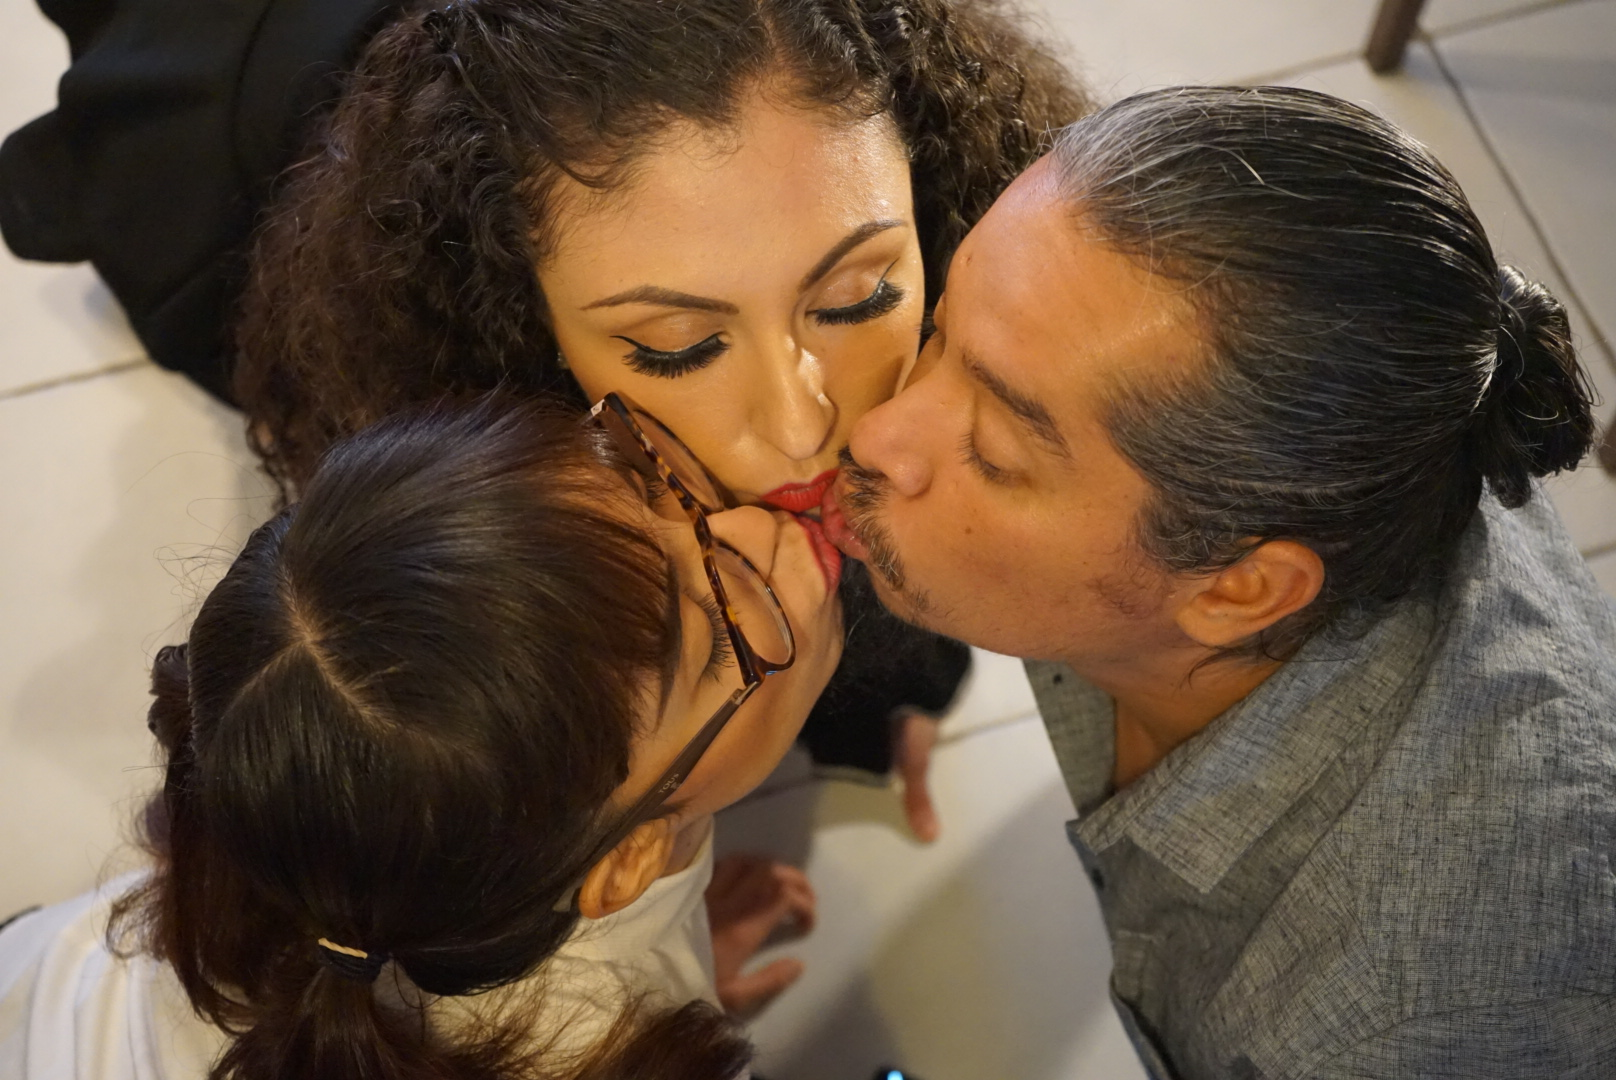 Lucy, Melin and Rodrigo kissing each other. MONTERREY CITY, MEXICO: THIS COUPLE married ONE WEEK AFTER THEY FIRST MET and have since invited a woman TWENTY-THREE YEARS his junior to join their relationship. On May 14, 2012, marketing entrepreneur, Rodrigo Contreras Diaz (41) from Monterrey City, Mexico, met his now wife, nutritionist, Melin Velasco Reyes (31) from Guadalajara City, through a mutual friend. Sparks flew instantly and Rodrigo ended up proposing to Melin that same day, to which she agreed. After just a week of preparations, they got married on May 21, 2012. Despite only having eyes for her, he explained to her early on in their relationship that he didn?t want a traditional monogamous relationship as he lived an alternative lifestyle and was open to a polyamorous relationship, which she accepted. For four years they focussed on their relationship then re-visited their exploration of other forms of partnerships and searched for another woman to join them in their union. On April 27, 2016, whilst they were both at a bar, they met one of the waitresses, Lucy (18), who was in high school at the time. Initially Lucy was shocked when Rodrigo began flirting with her in front of Melin, but after a few hours of chatting, they became closer and formed a polyamorous relationship. Since then, he admits that the addition of Lucy has positively improved his marriage with Melin and they now all plan to get married as a throuple, although Melin and Lucy, who are both straight, do not have a sexual relationship. mediadrumworld.com / @trikytriad, Image: 510886271, License: Rights-managed, Restrictions: , Model Release: no, Credit line: mediadrumworld.com / @trikytriad / Media Drum World / Profimedia